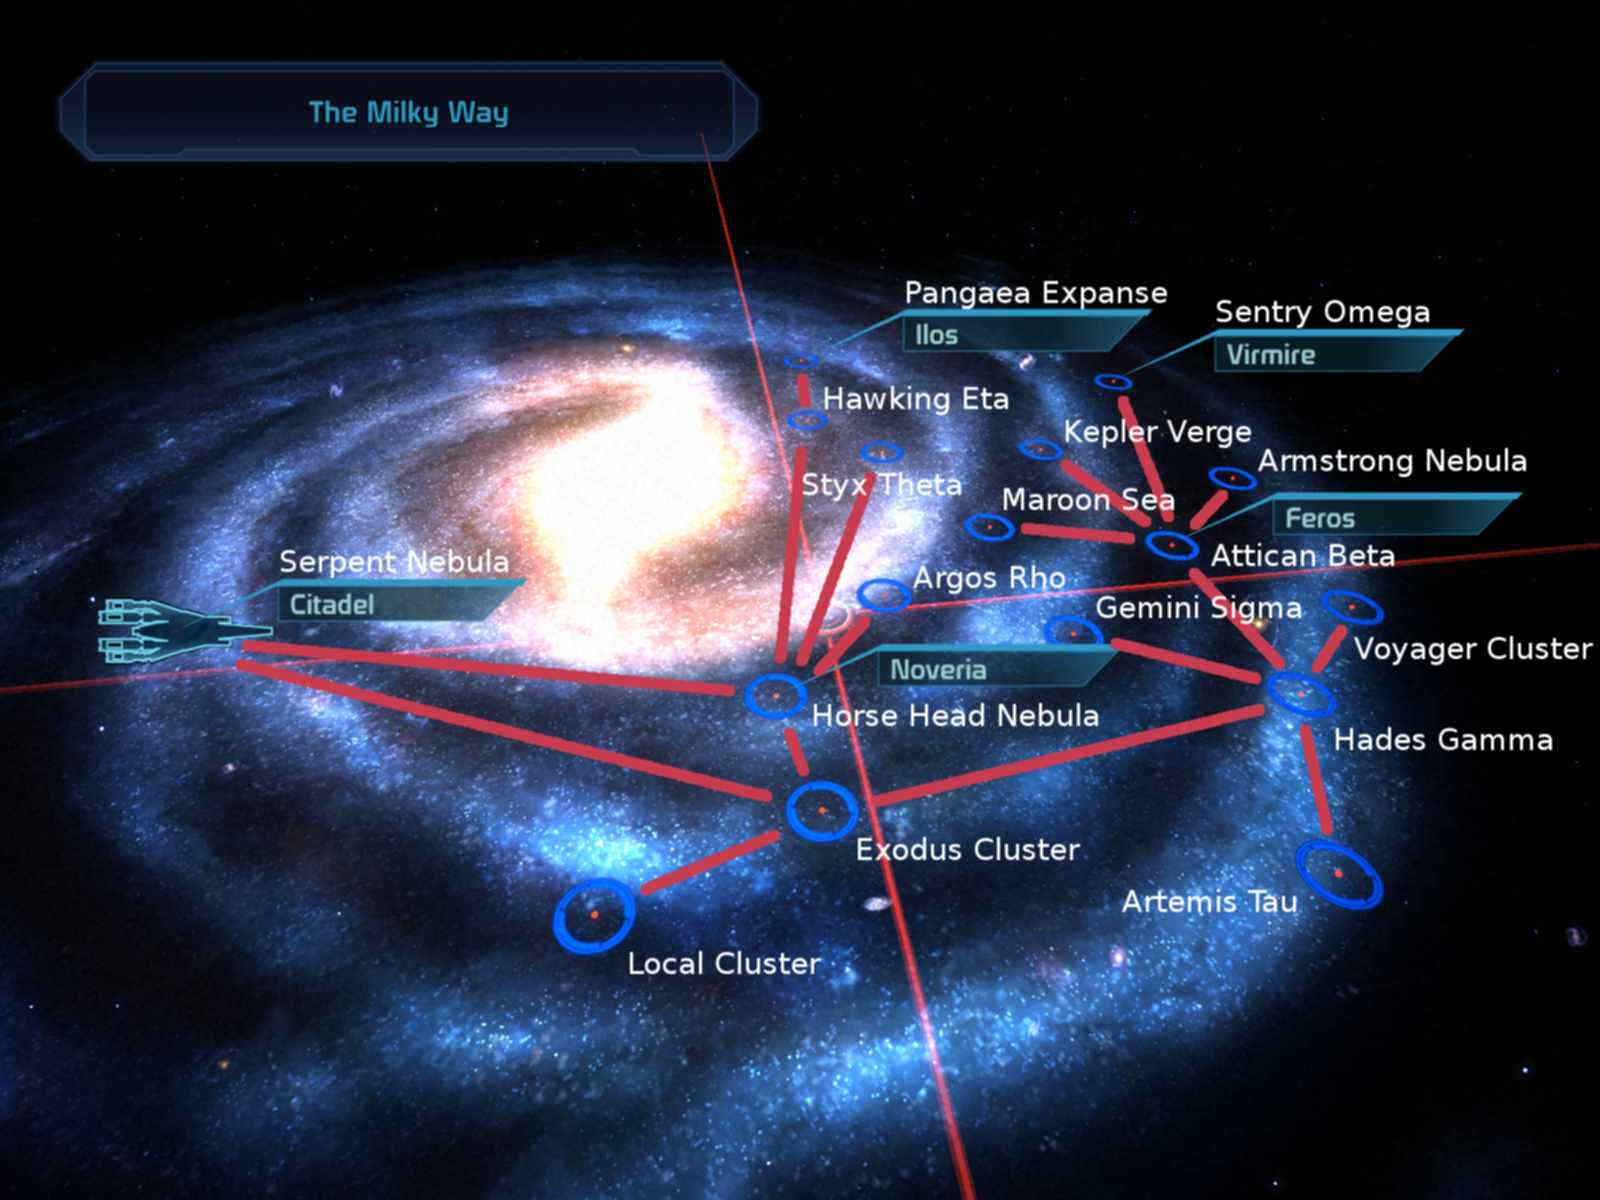 Mass Effect Andromeda Star Map.Milky Way Mass Effect Wiki Fandom Powered By Wikia